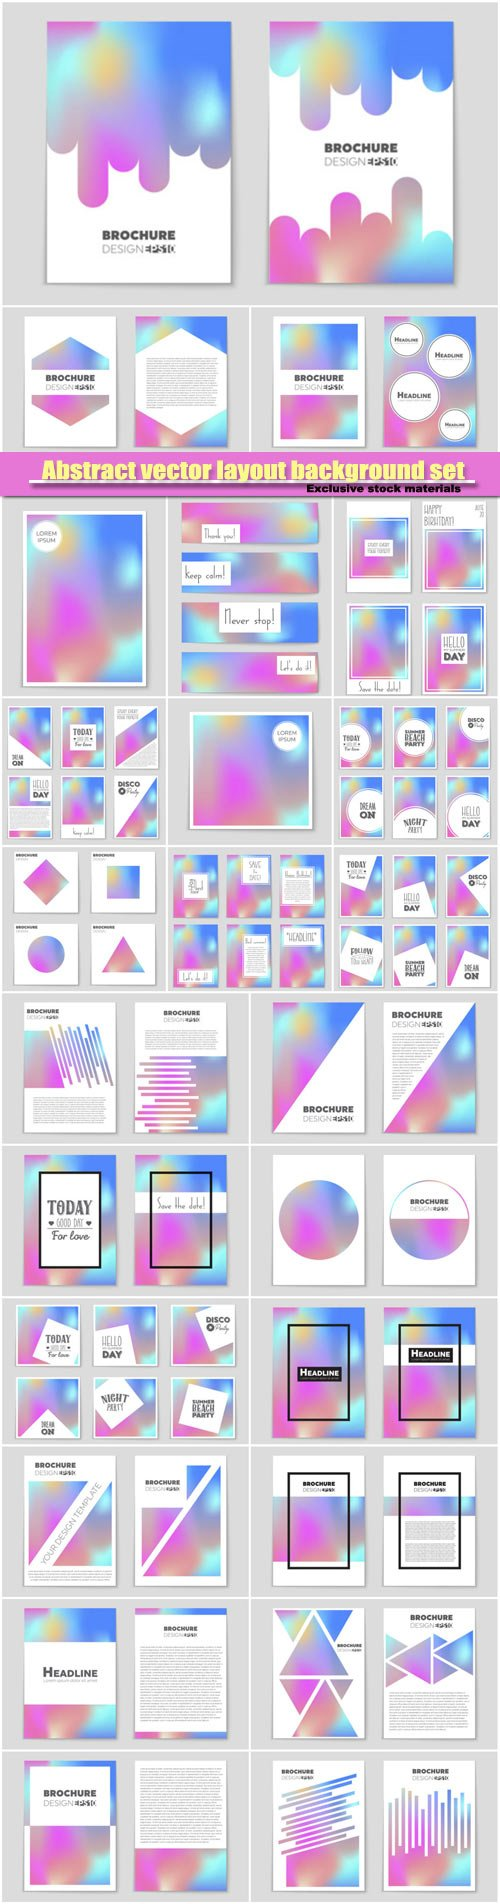 Abstract vector layout background set, template design, brochure and card set